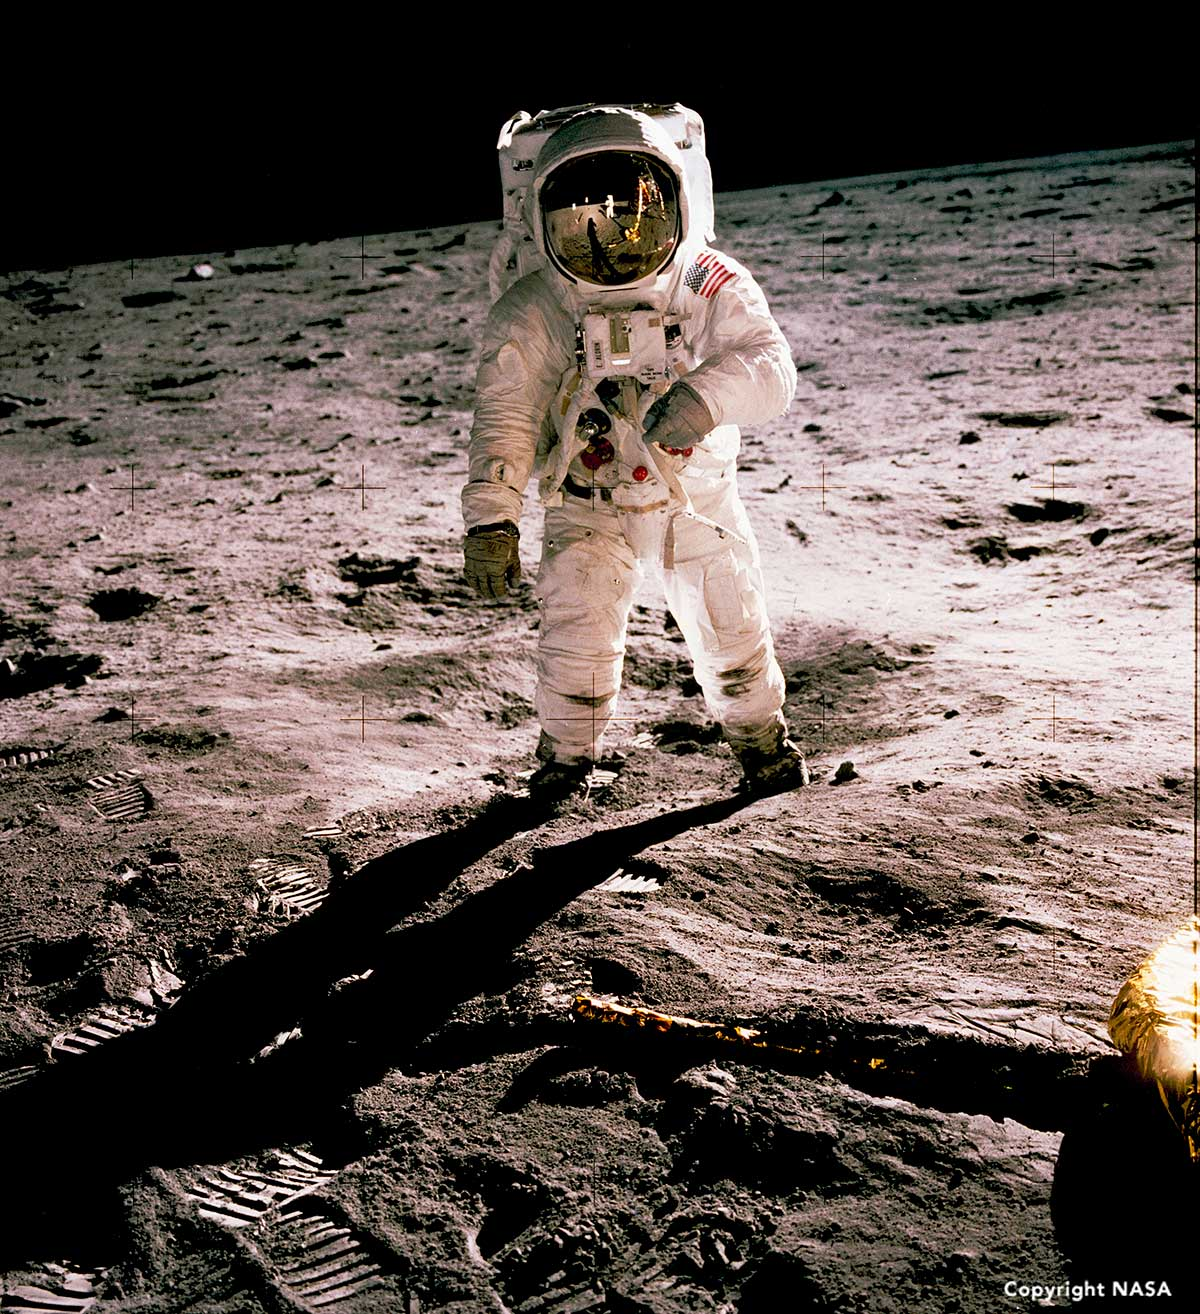 Buzz Aldrin, Apollo moon landings